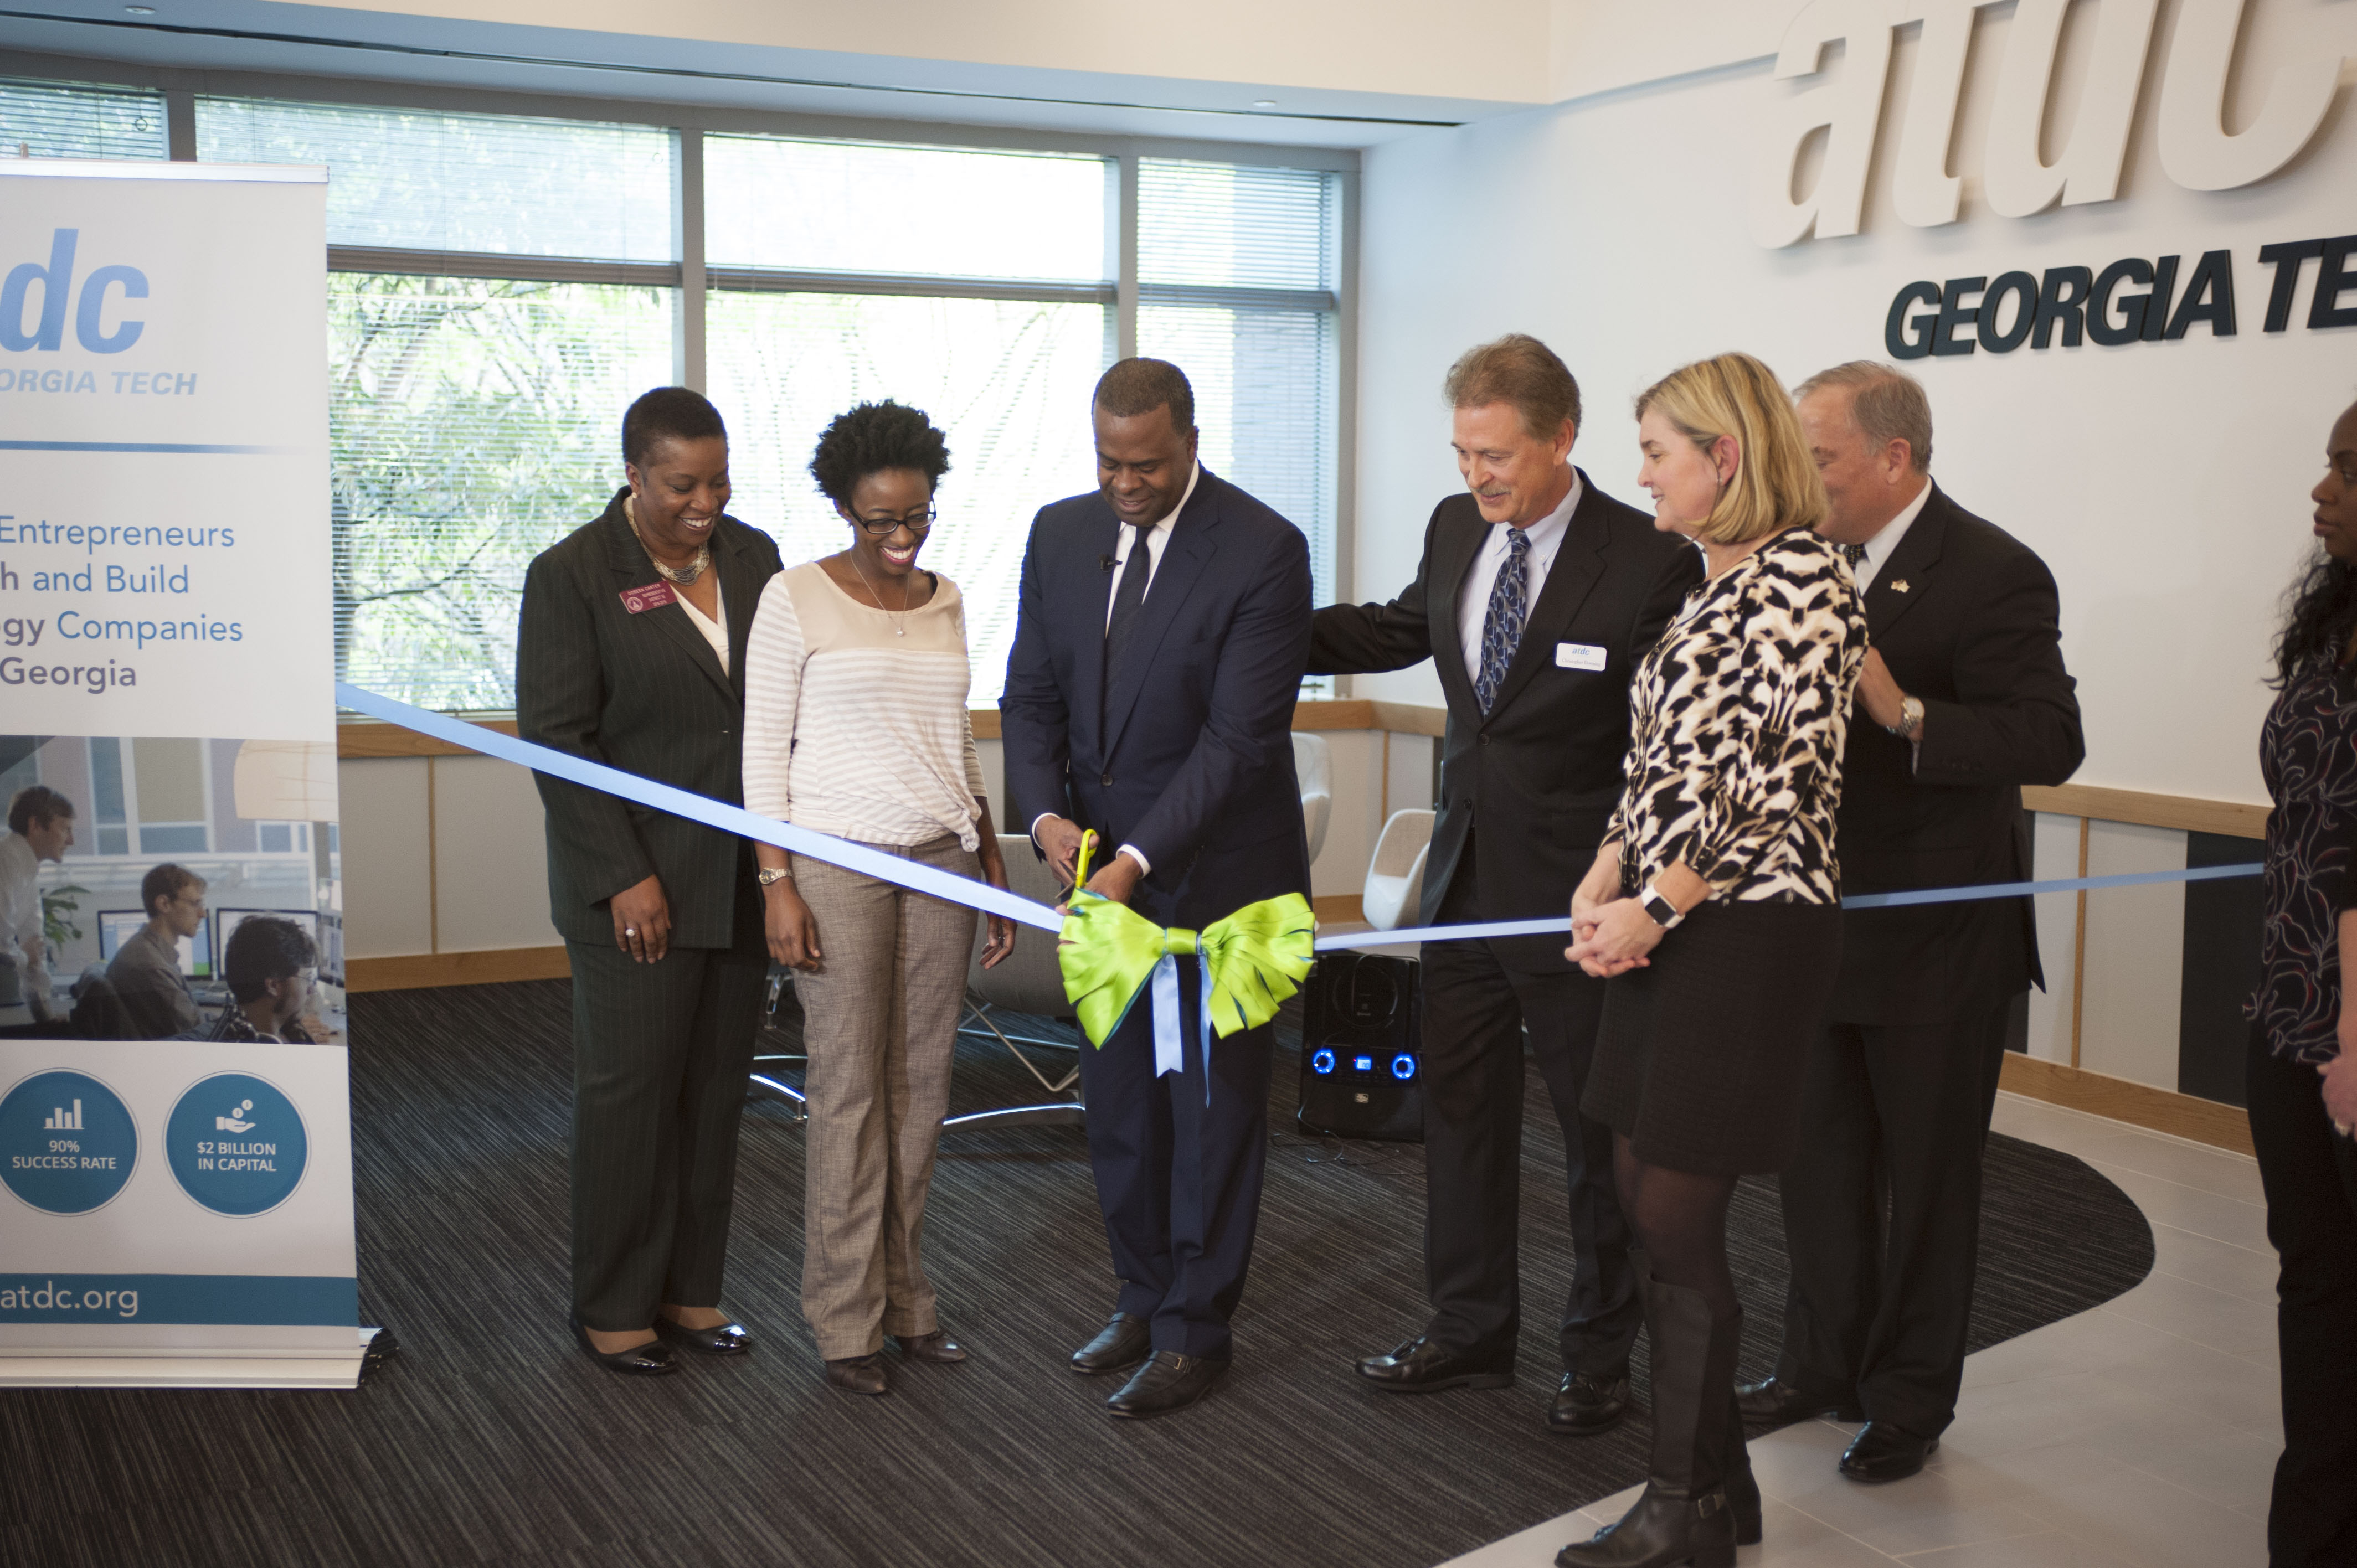 Atlanta Mayor Kasim Reed, center, cuts the ceremonial ribbon following a redesign of the space at Georgia Tech's Advanced Technology Development Center on March 23. From left: House Reps. Doreen Carter and Dar'shun Kendrick; Reed; Chris Downing, interim vice president, Enterprise Innovation Institute; Stephen E. Cross, executive vice president for research, Georgia Tech; and Jennifer Bonnett, acting general manager, ATDC.